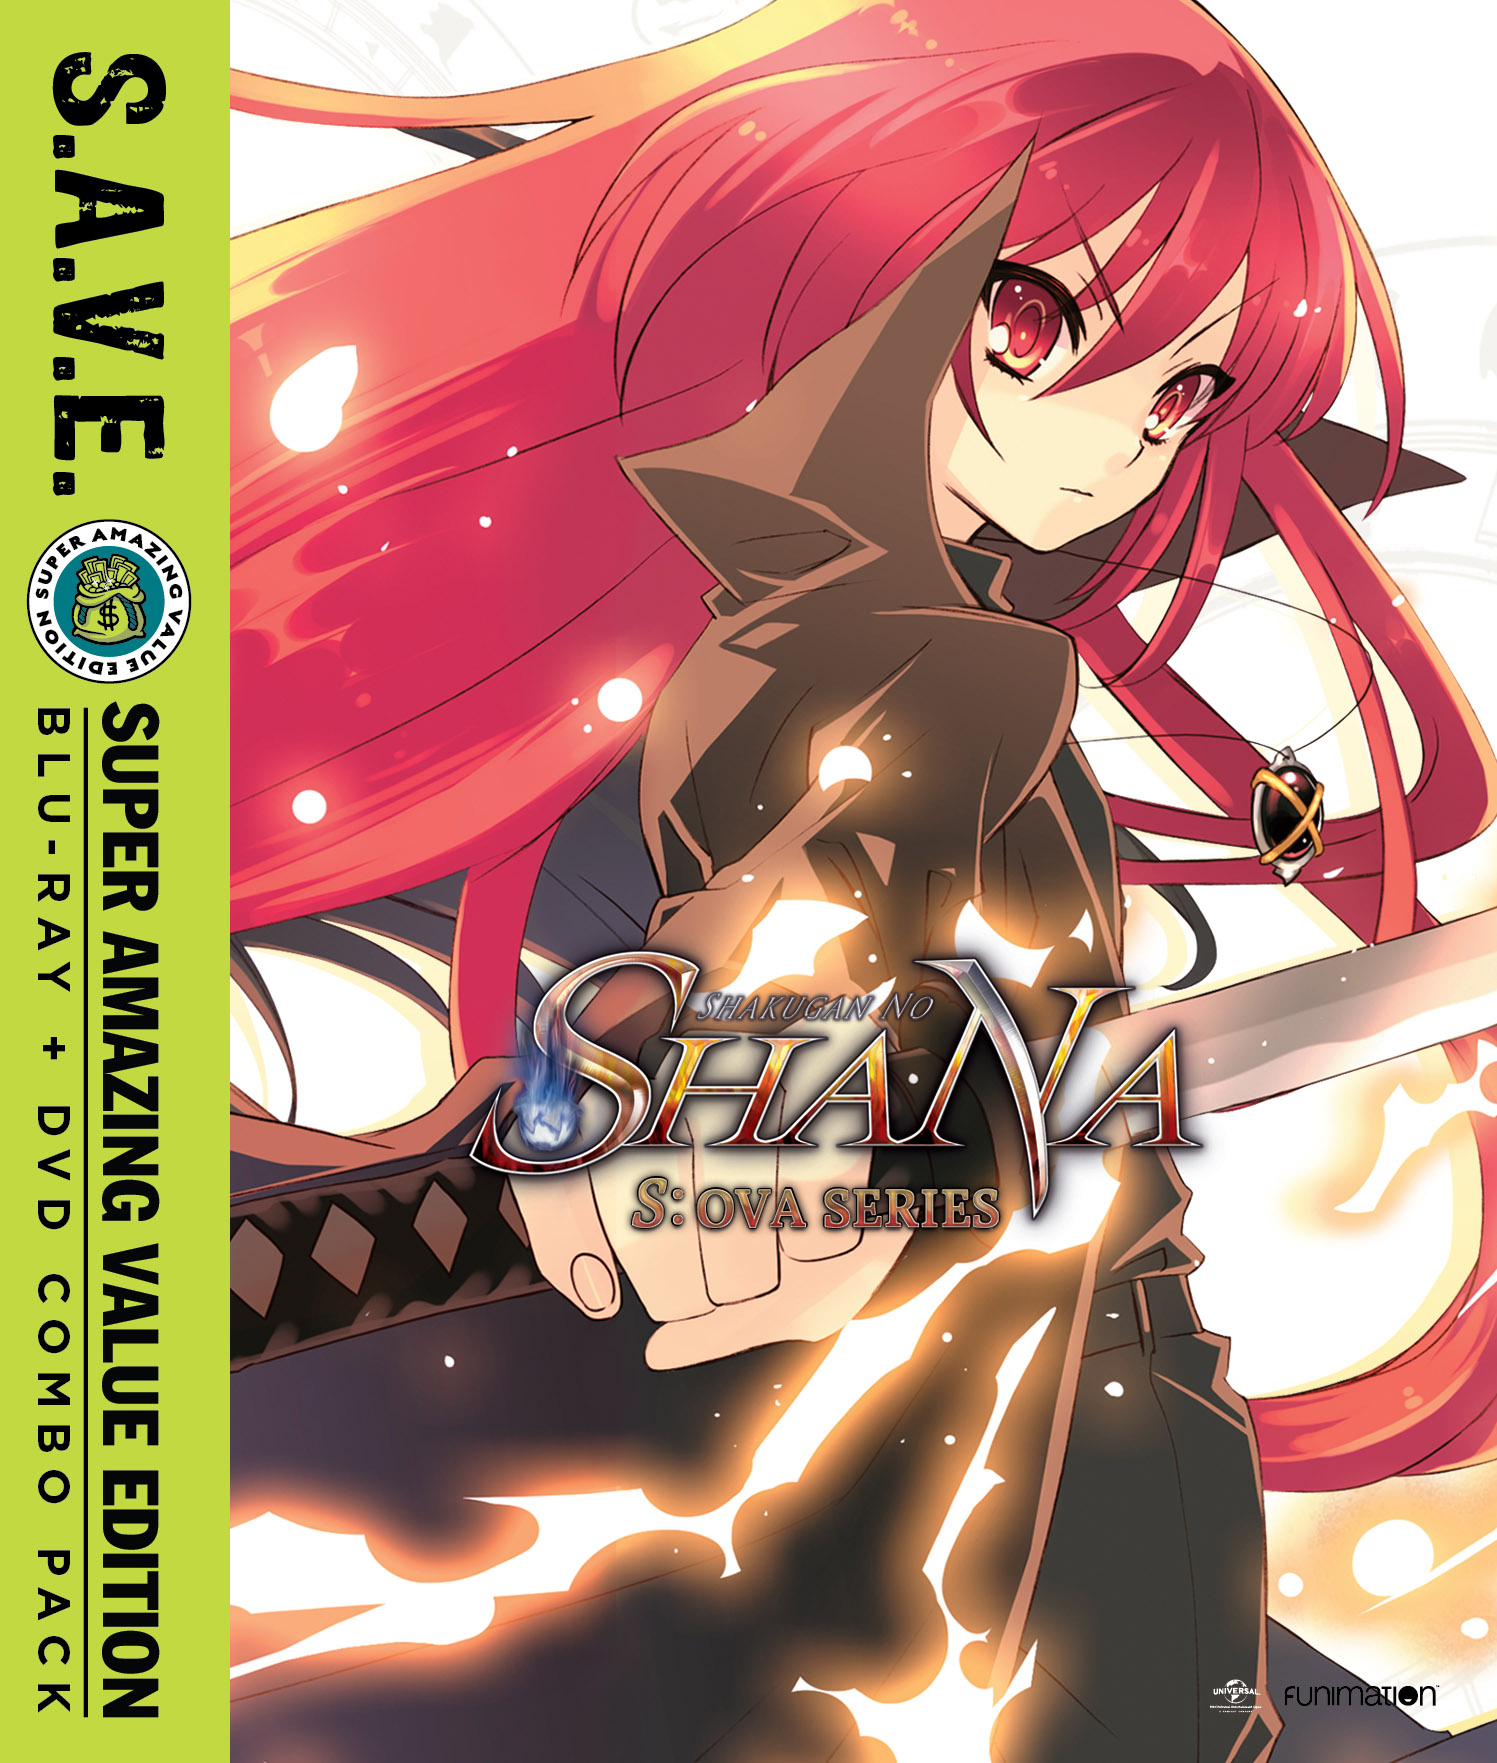 Shakugan no Shana S OVA Series Blu-ray/DVD SAVE Edition 704400090899